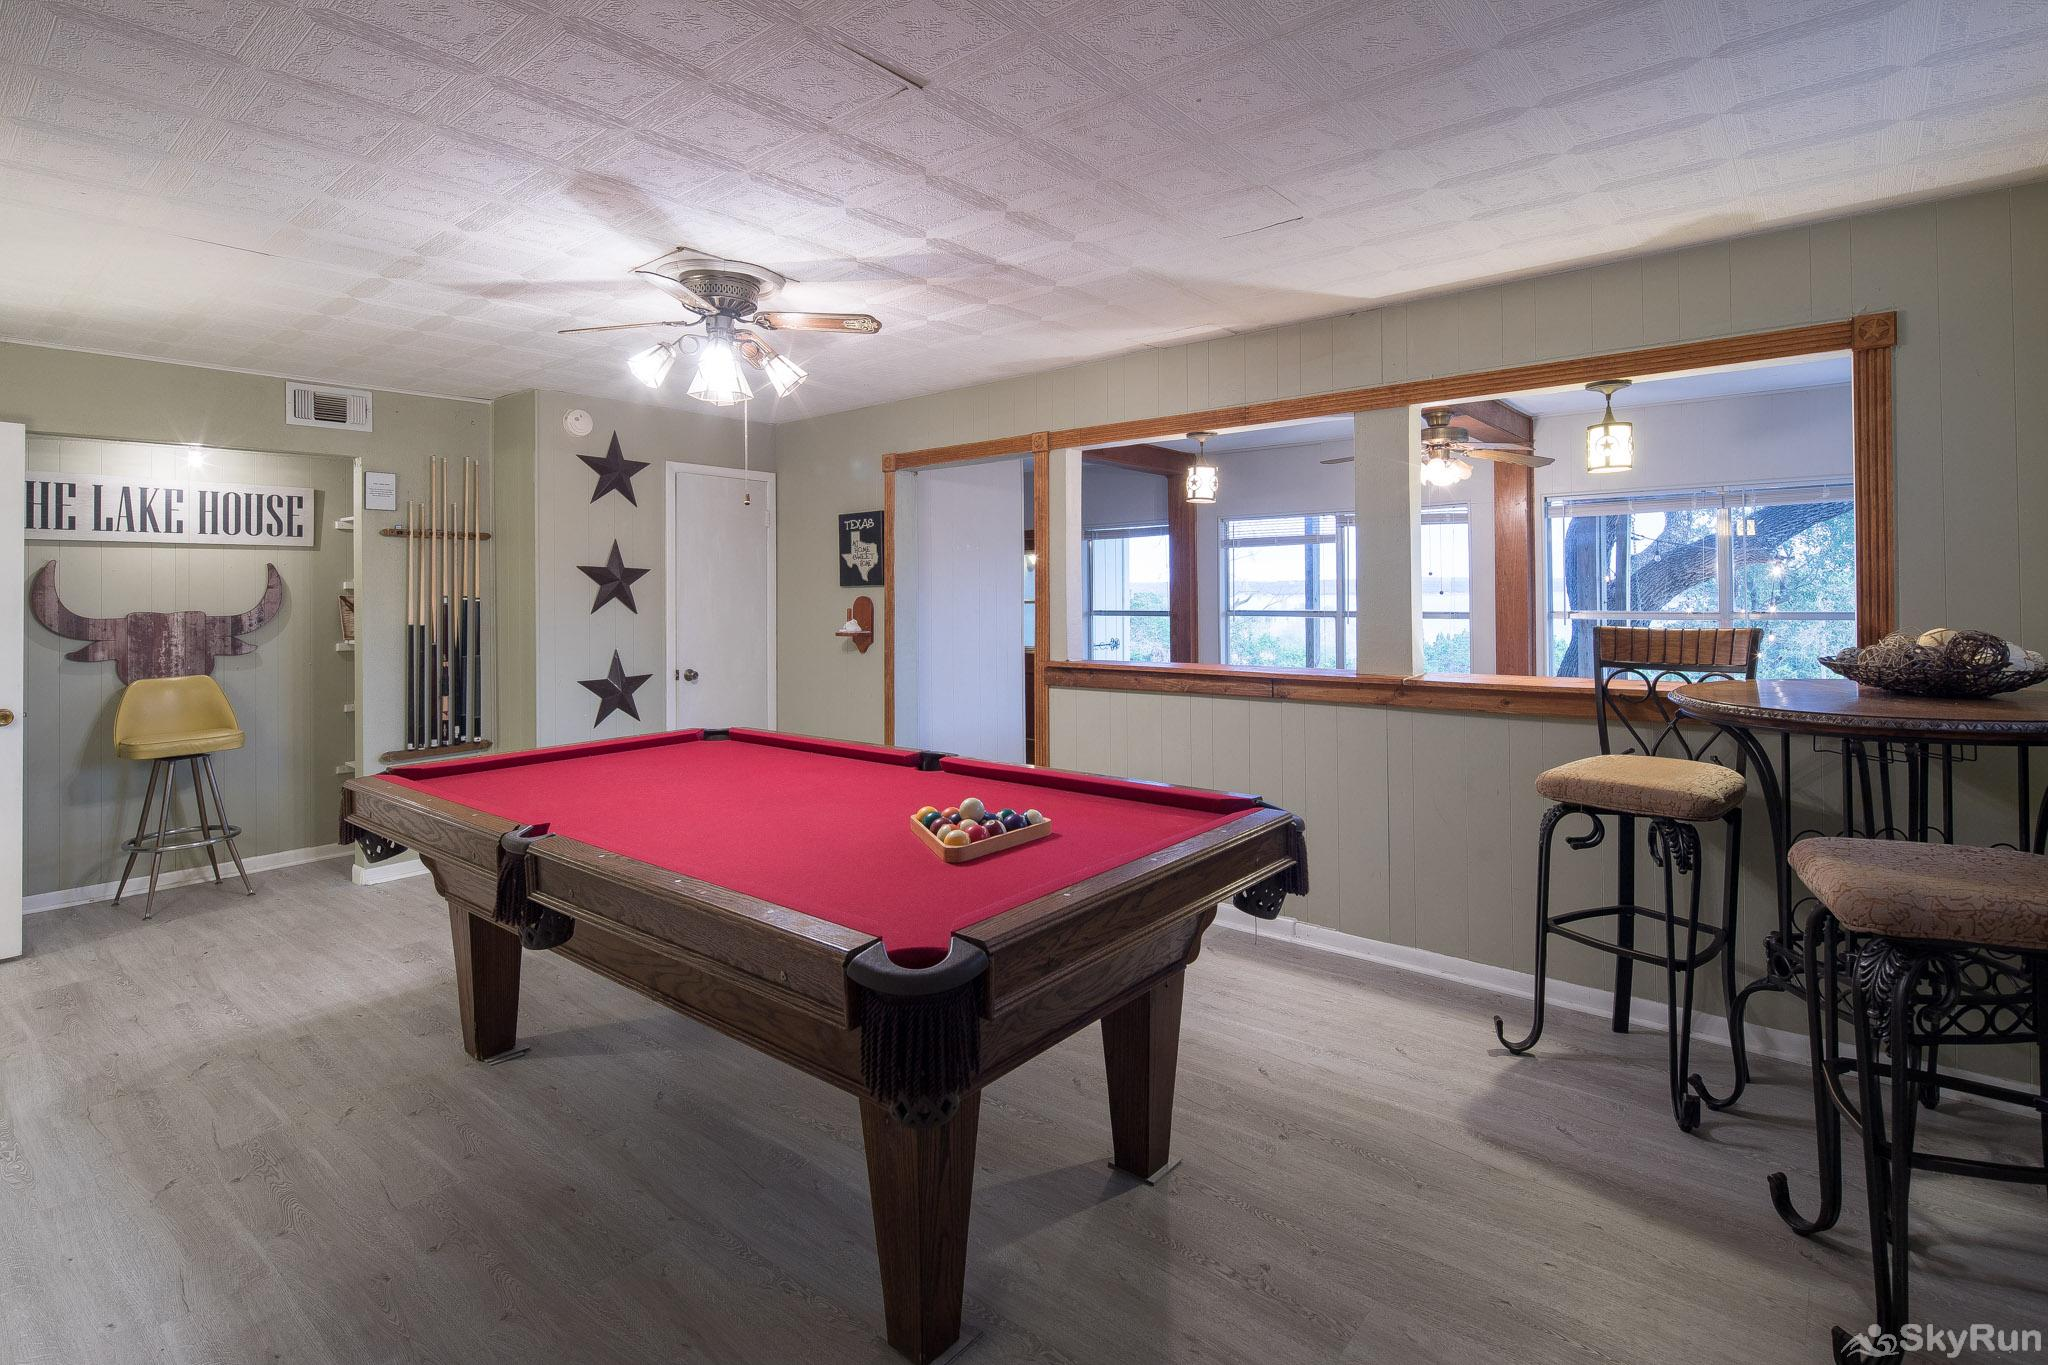 TEXAS ROSE LODGE Pool table area, cont.